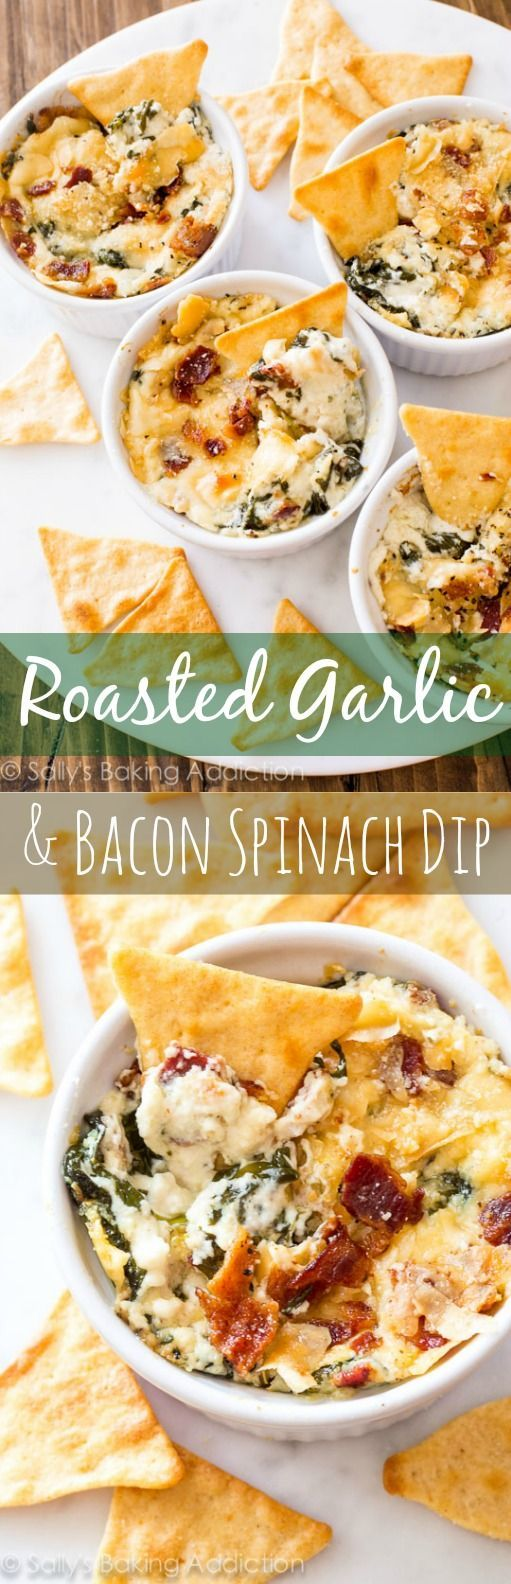 Roasted Garlic and Bacon Spinach Dip